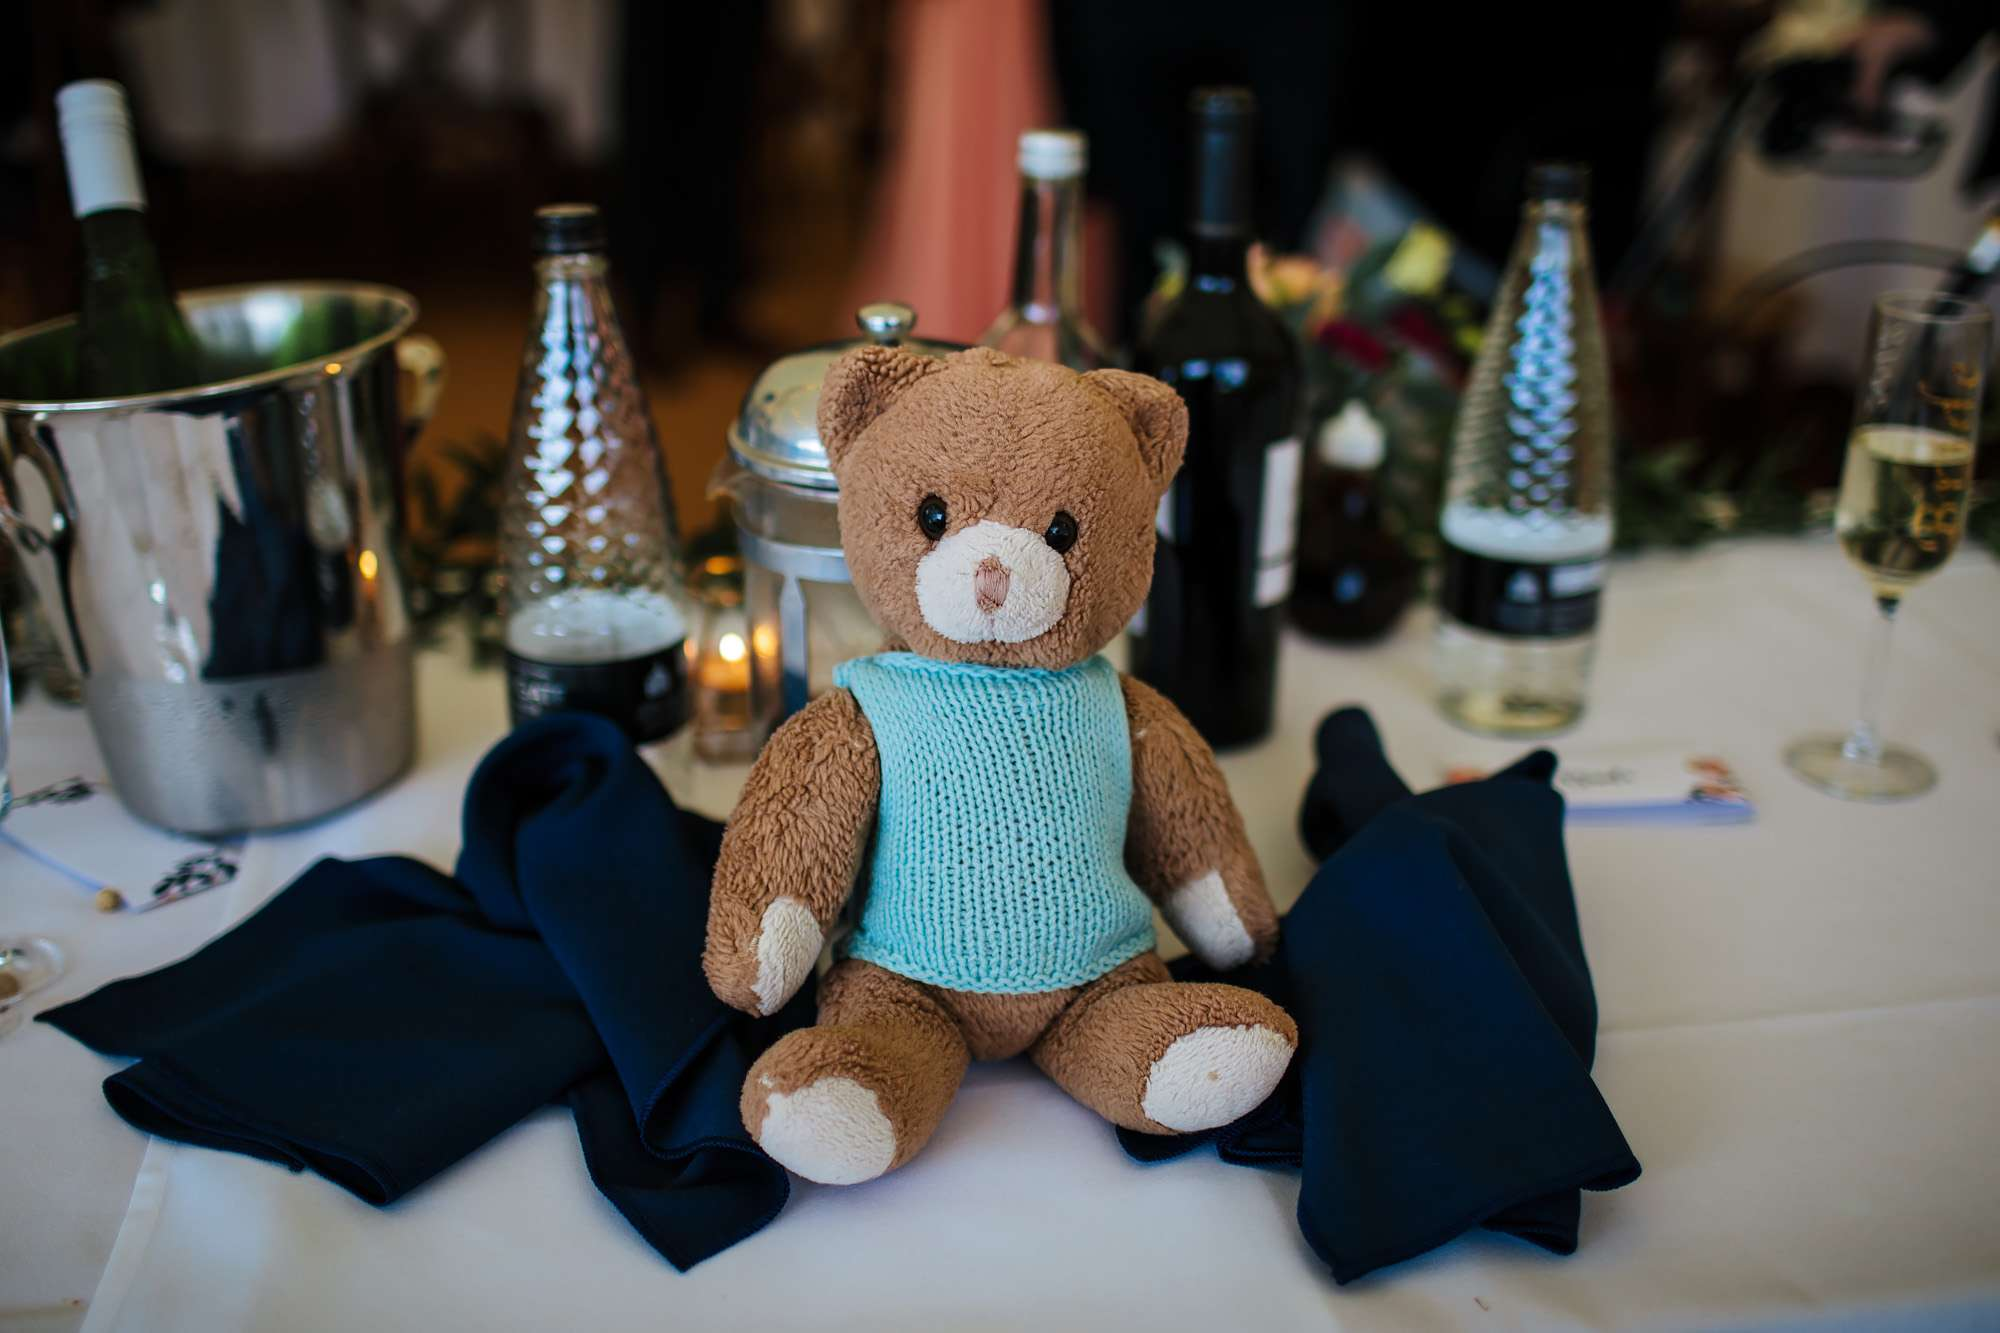 Teddy bear sitting on the table at a wedding